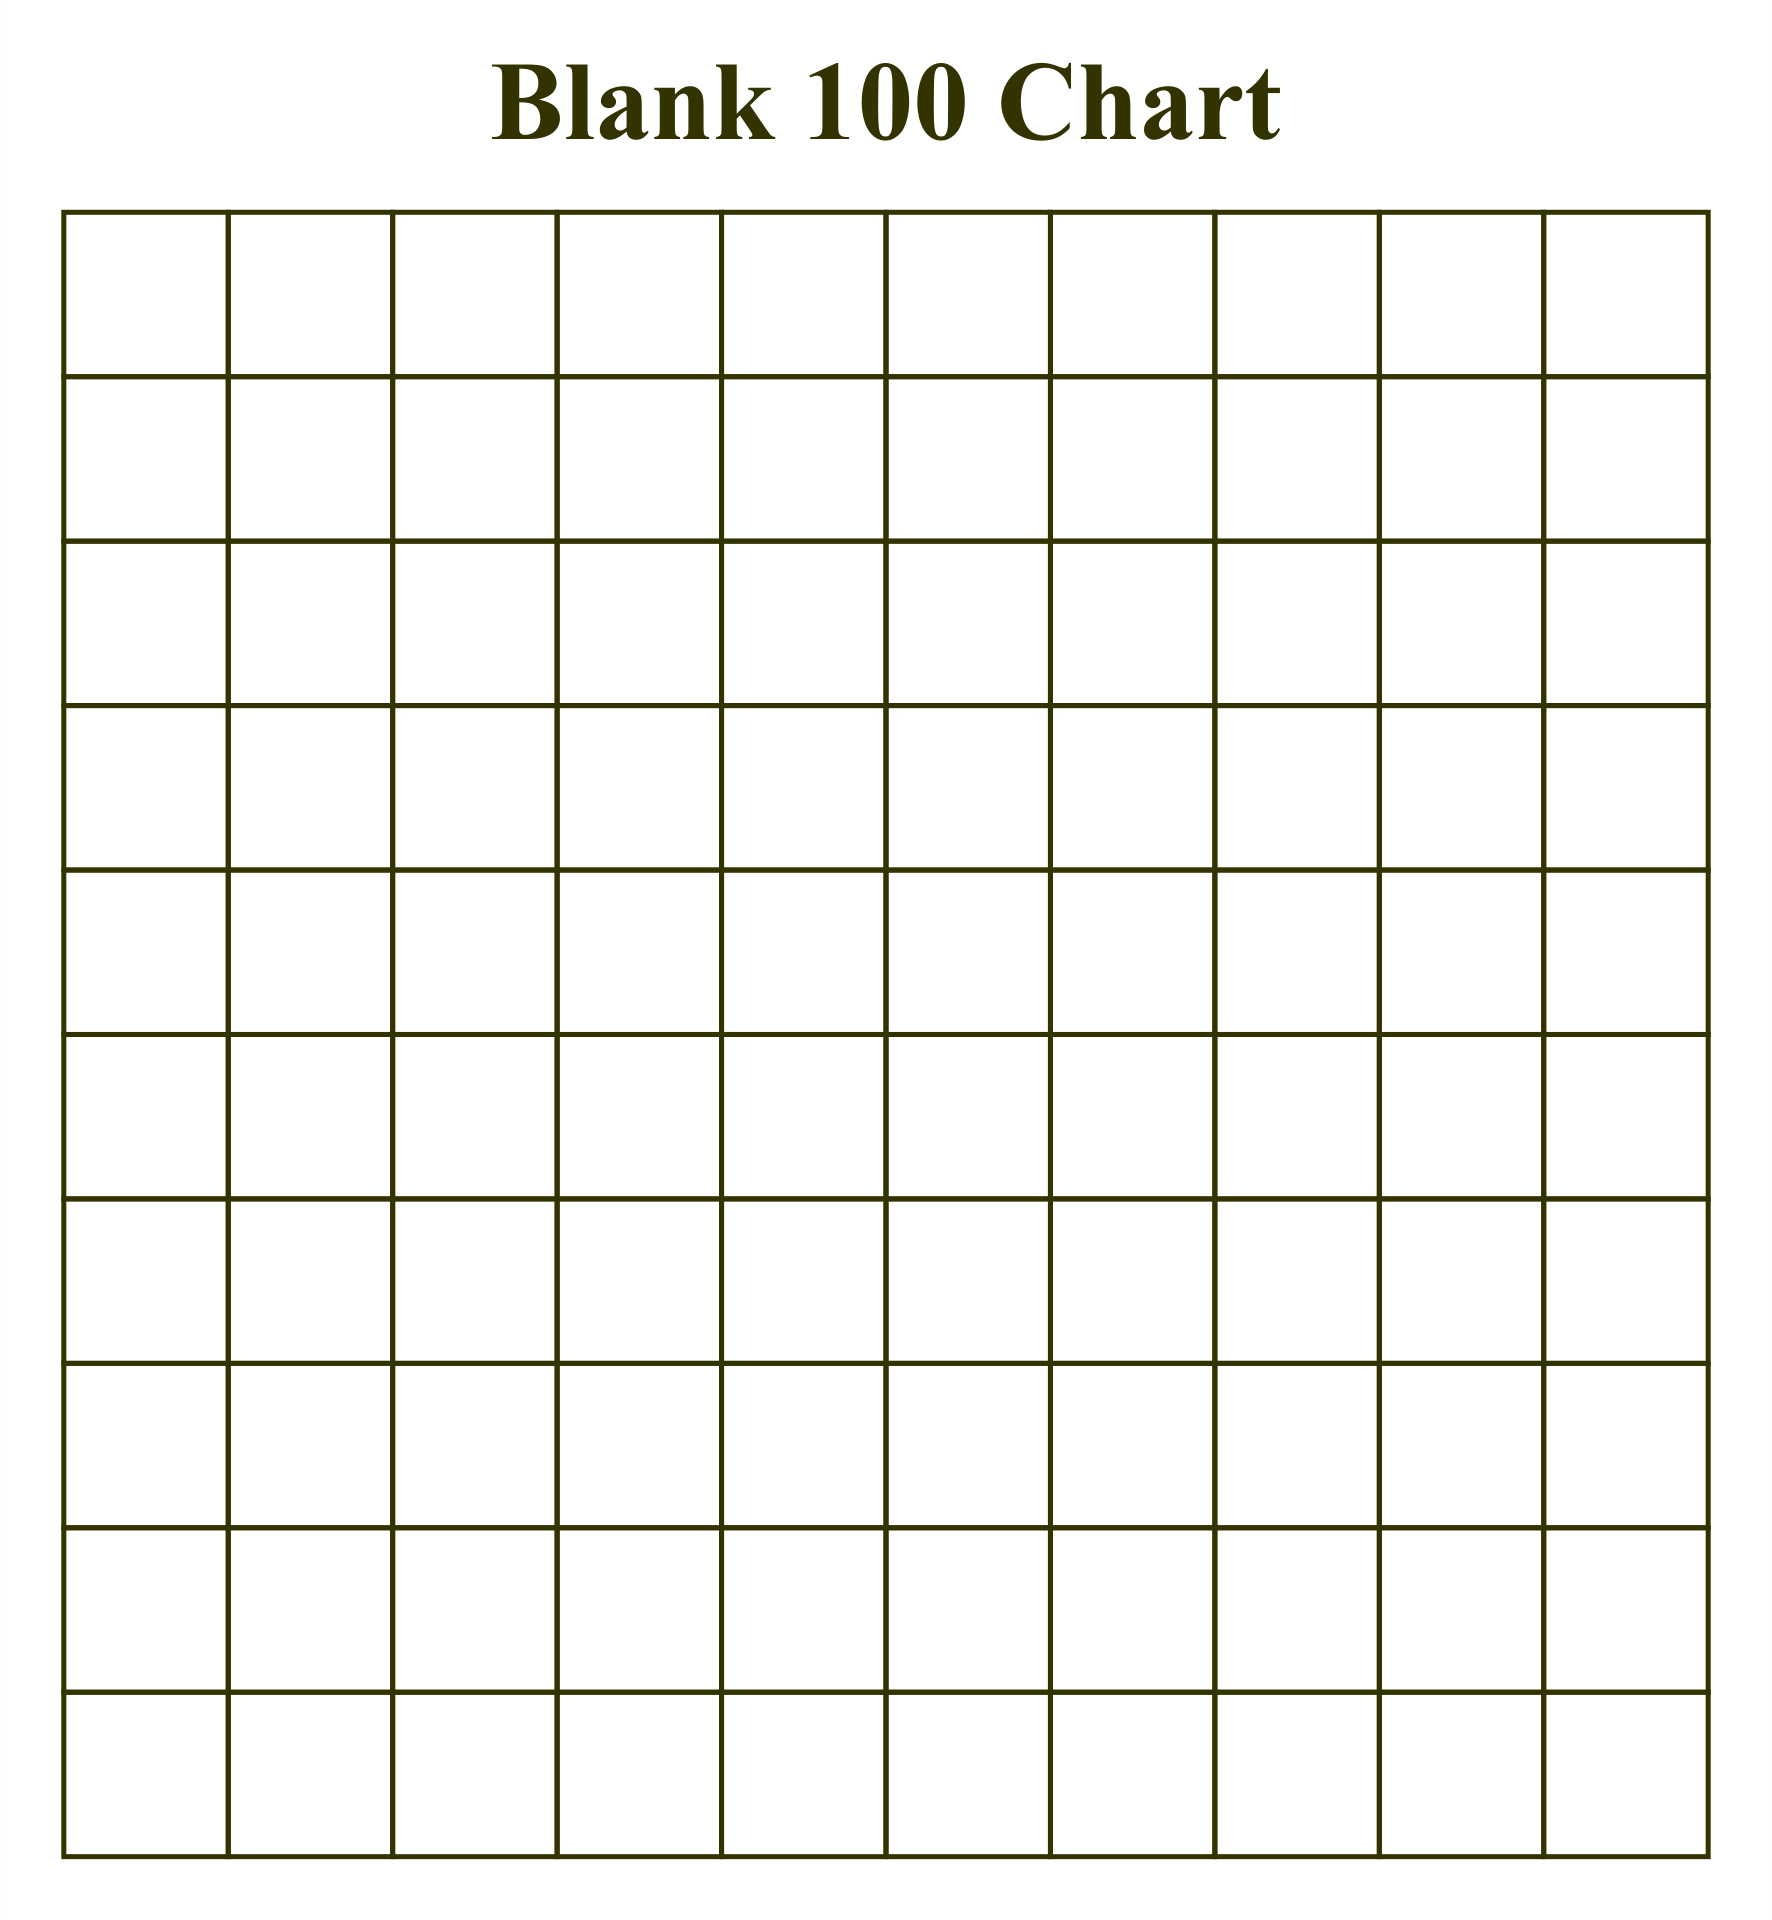 5 Images of 100 Chart Printable